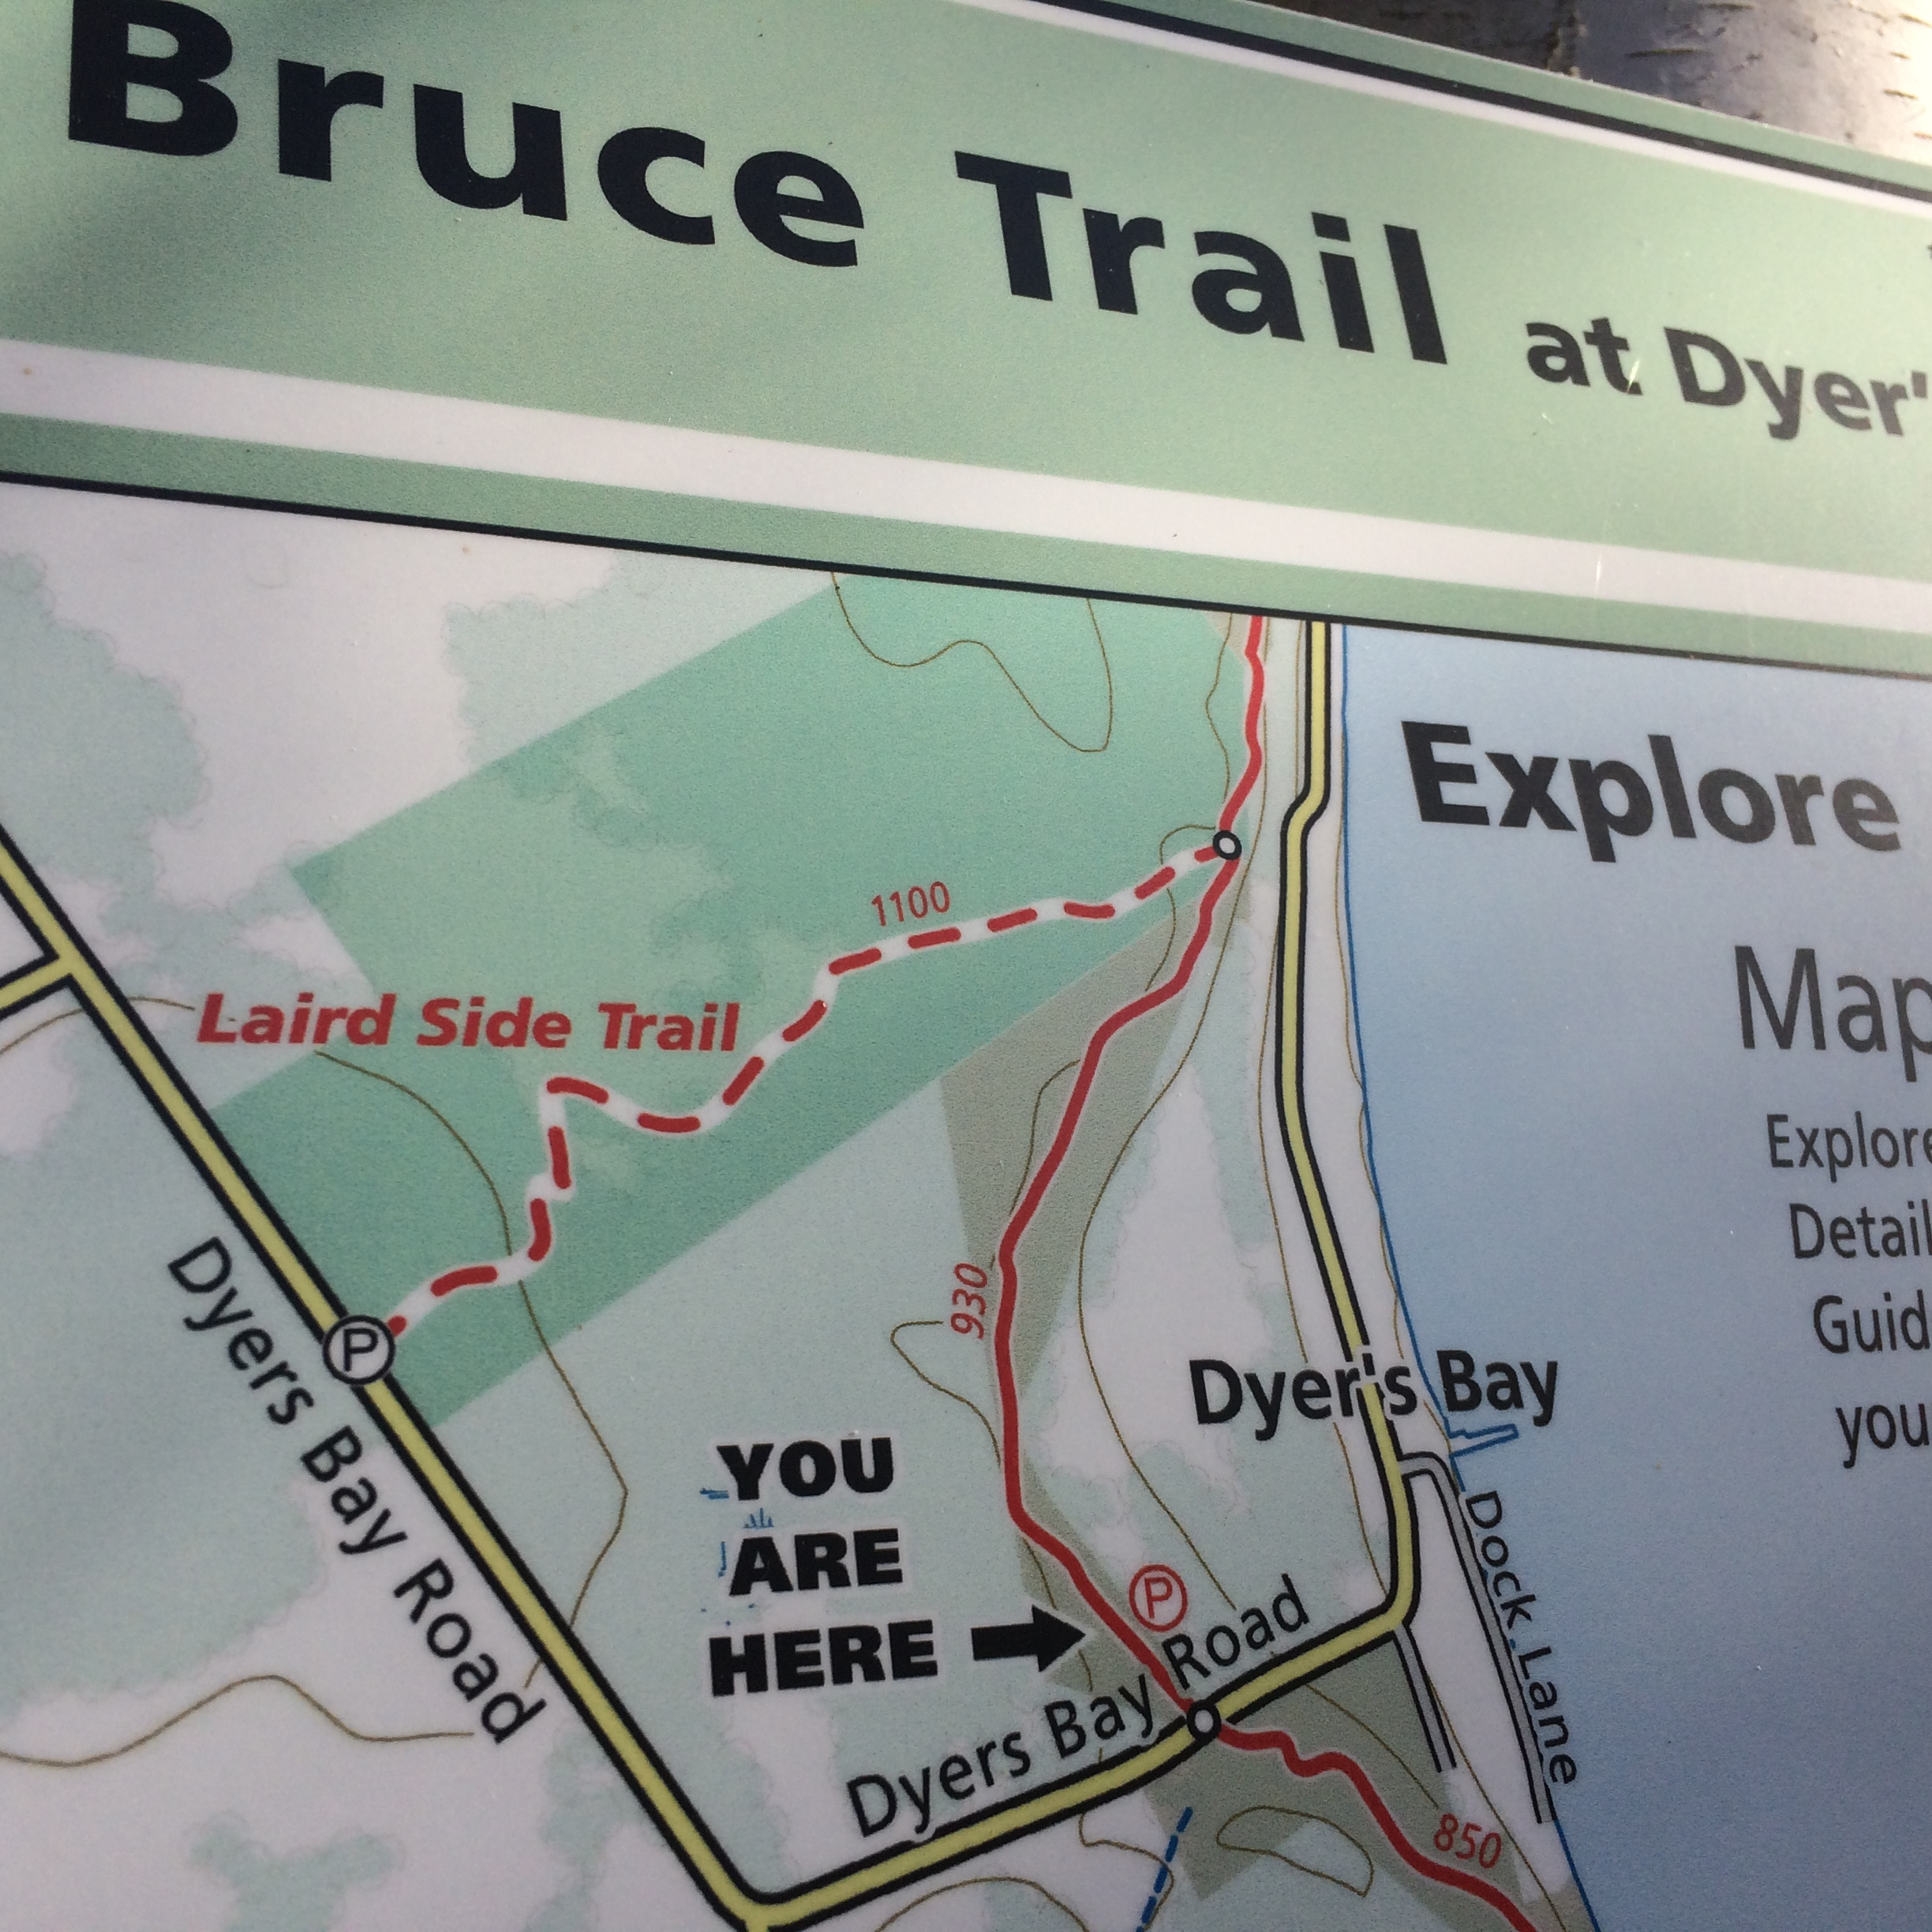 Dyers Bay Bruce Trail access